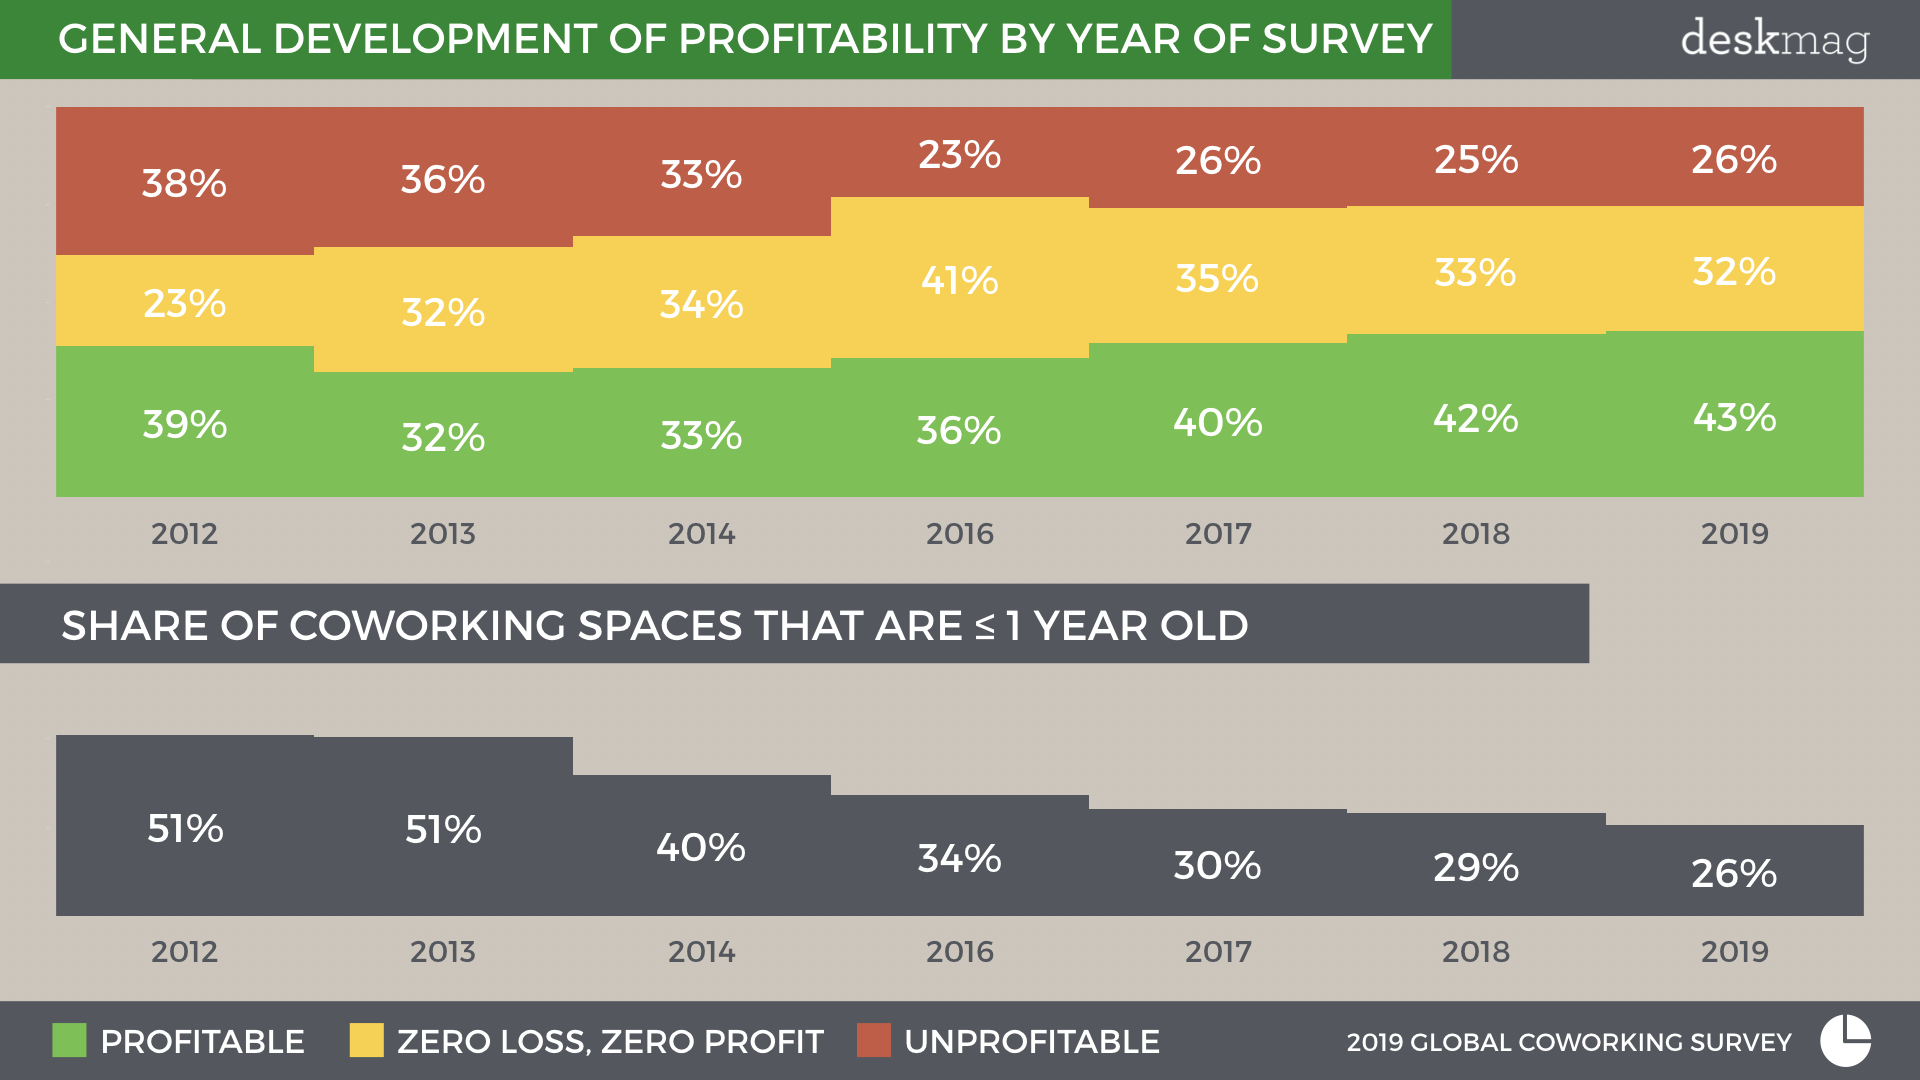 General development of profitability of coworking spaces by year